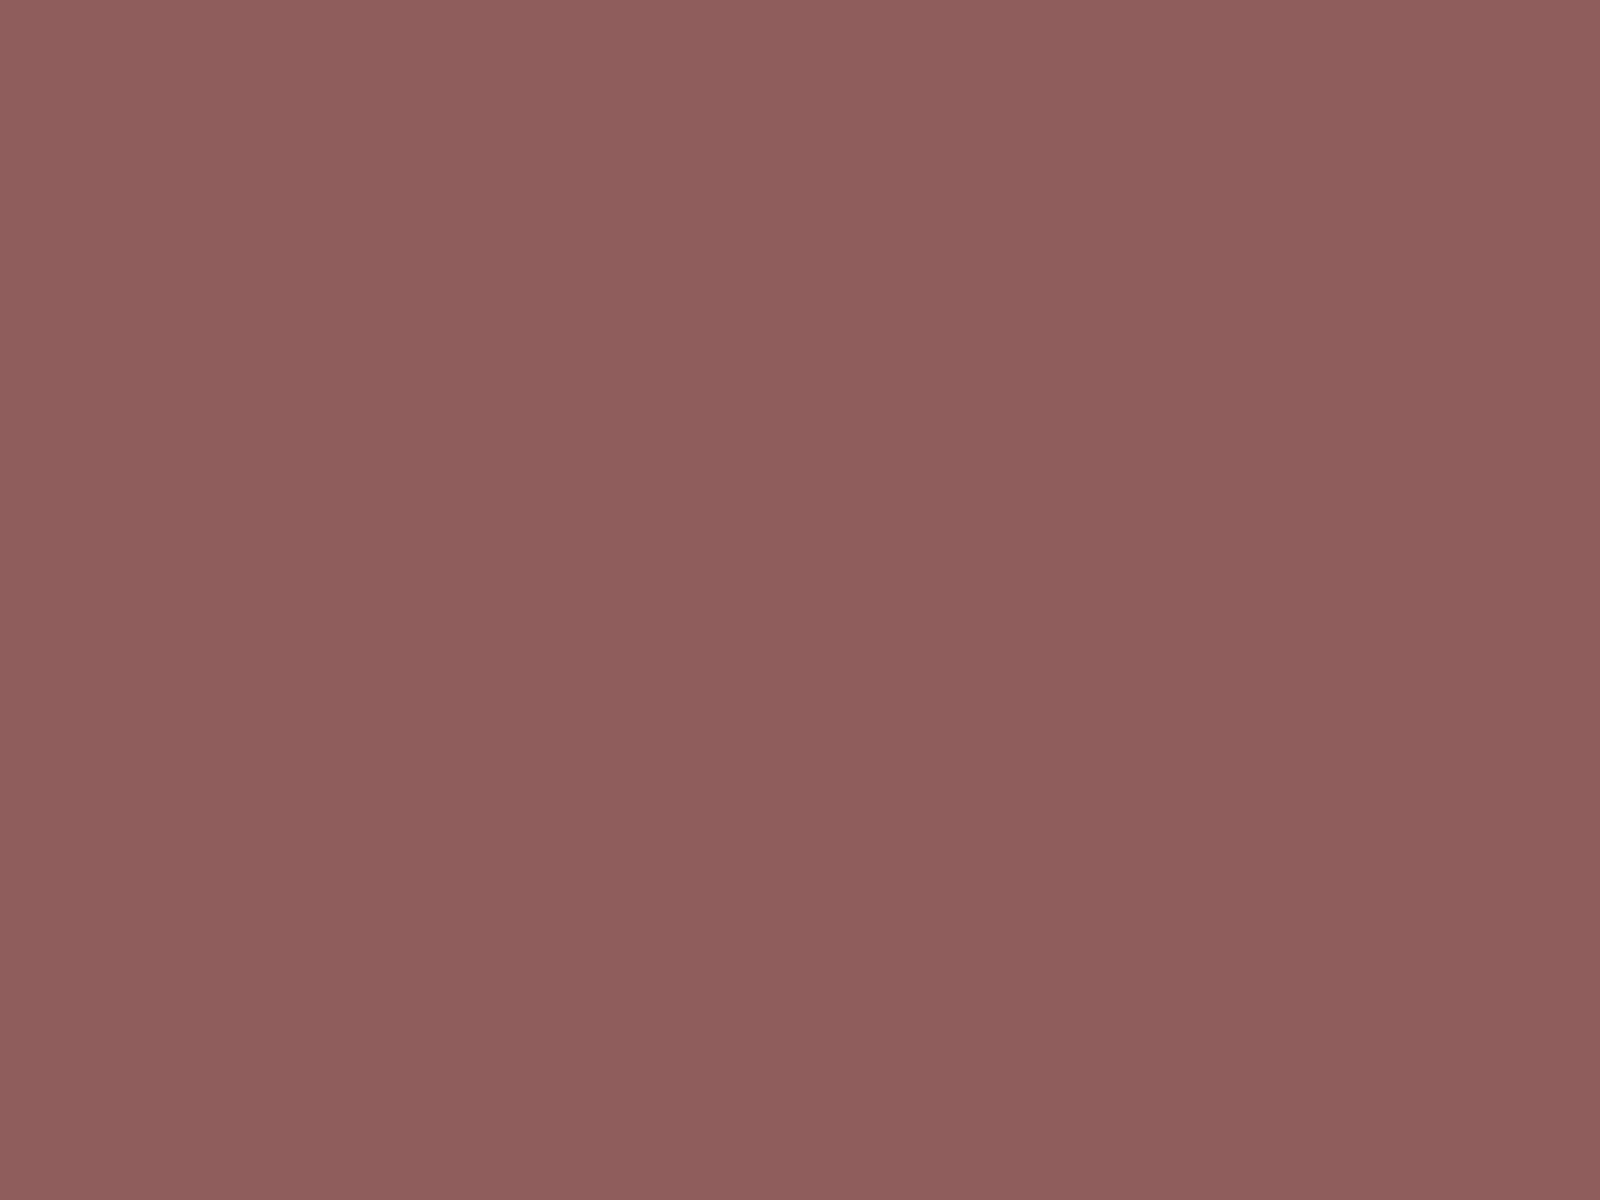 1600x1200 Rose Taupe Solid Color Background